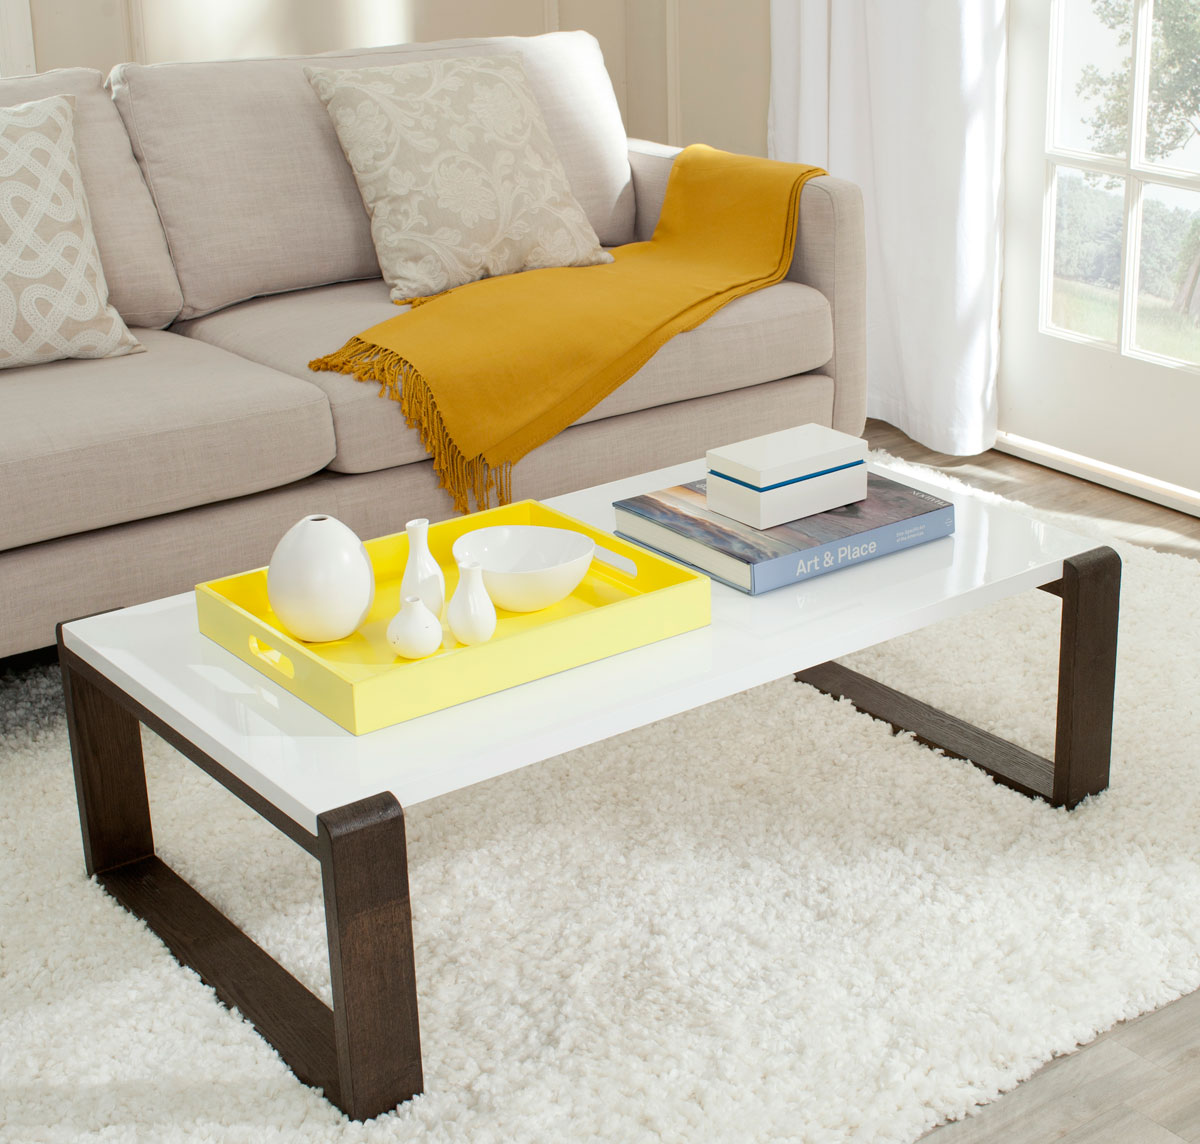 BARTHOLOMEW MID CENTURY SCANDINAVIAN LACQUER COFFEE TABLE FOX4210A COFFEE  TABLES. Color: White U0026 Dark Brown